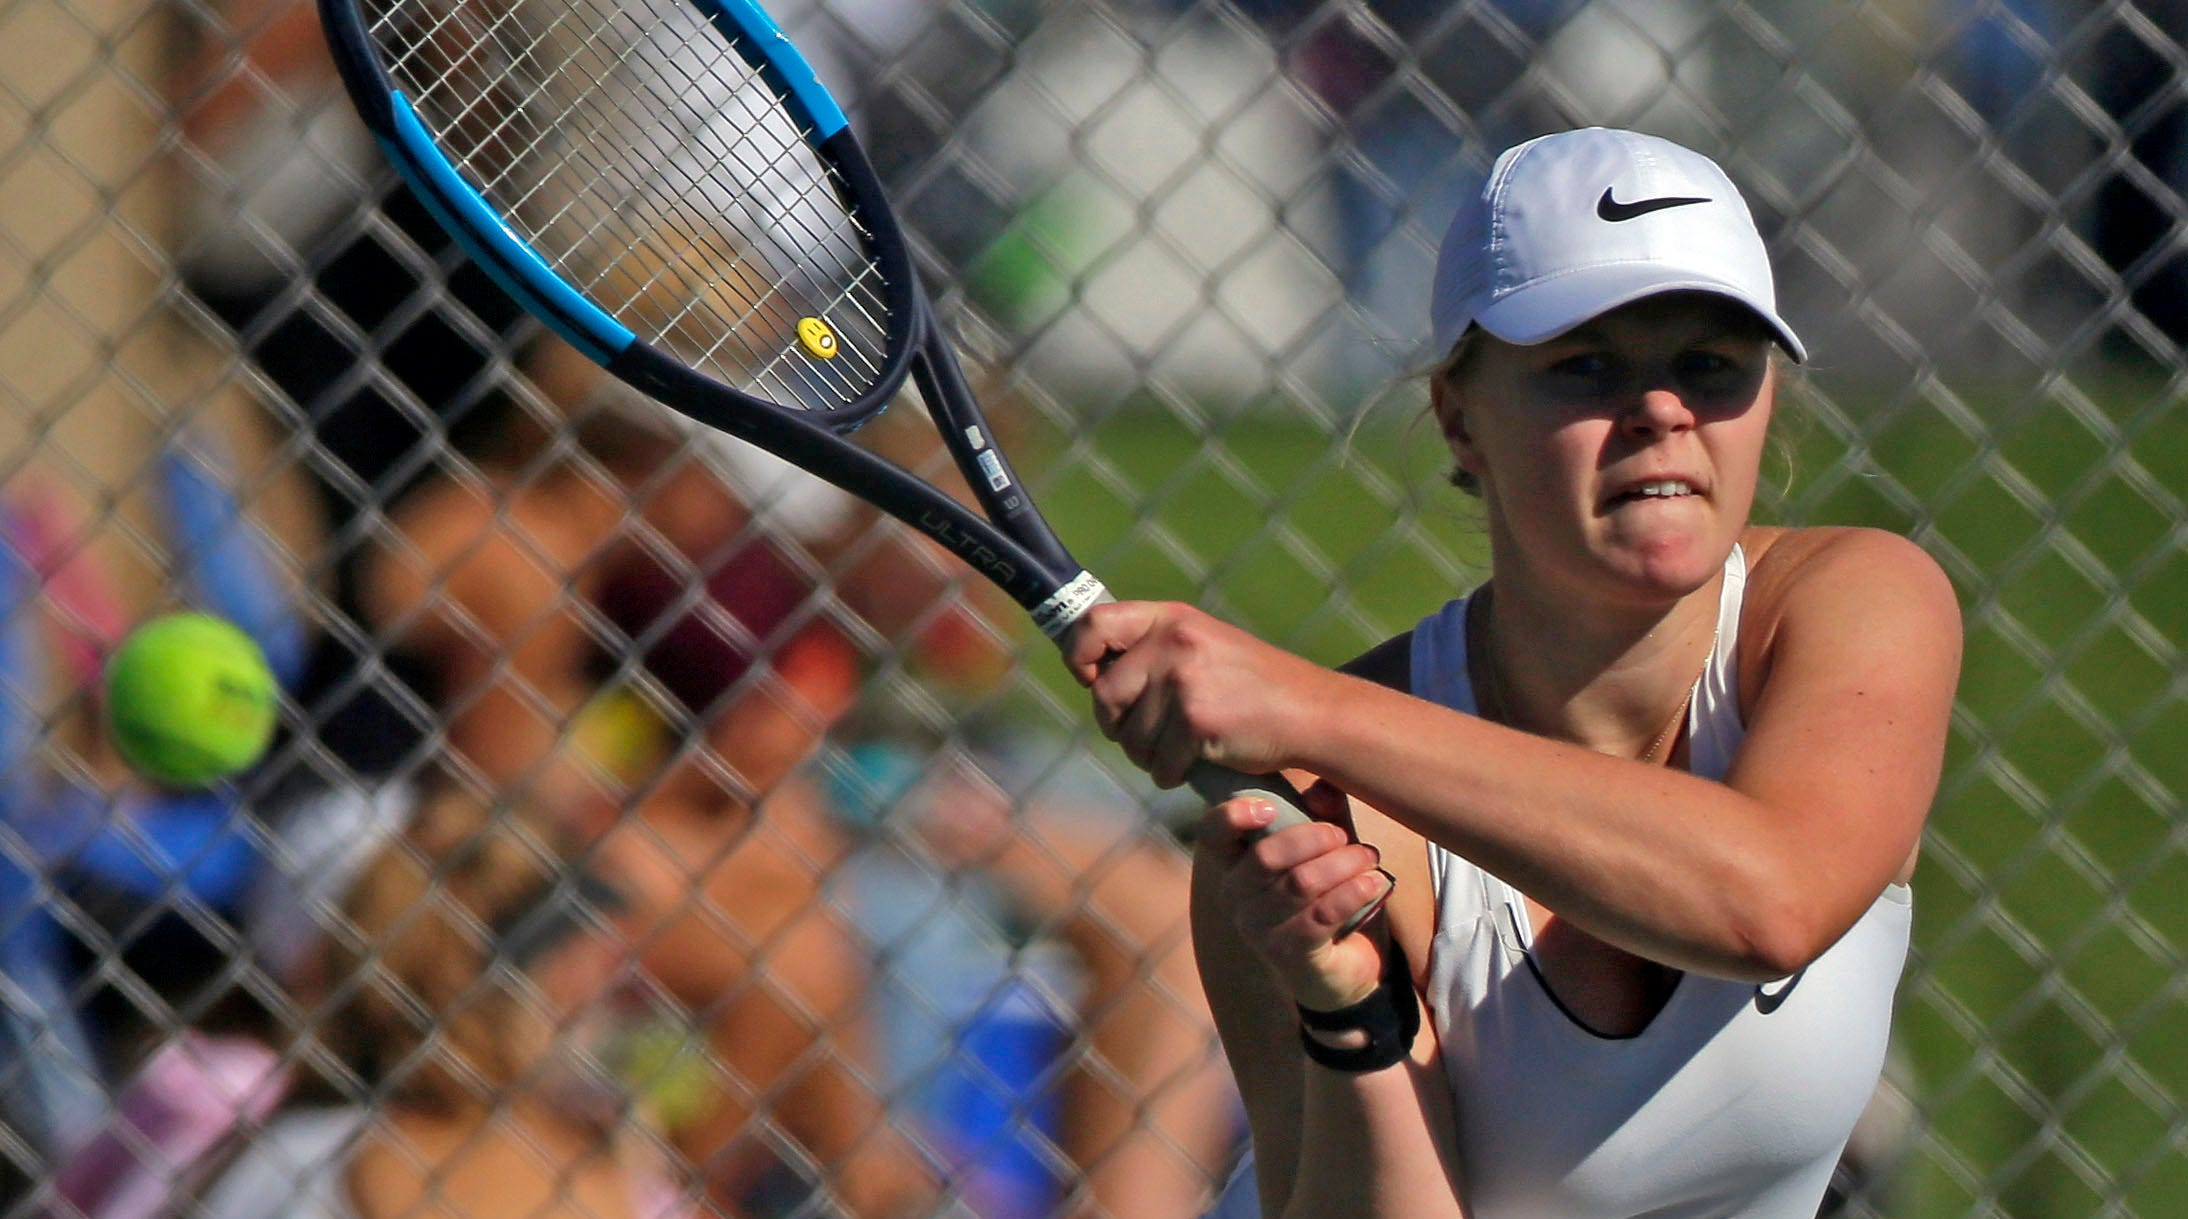 Xavier tennis players in good spots to make deep run at state